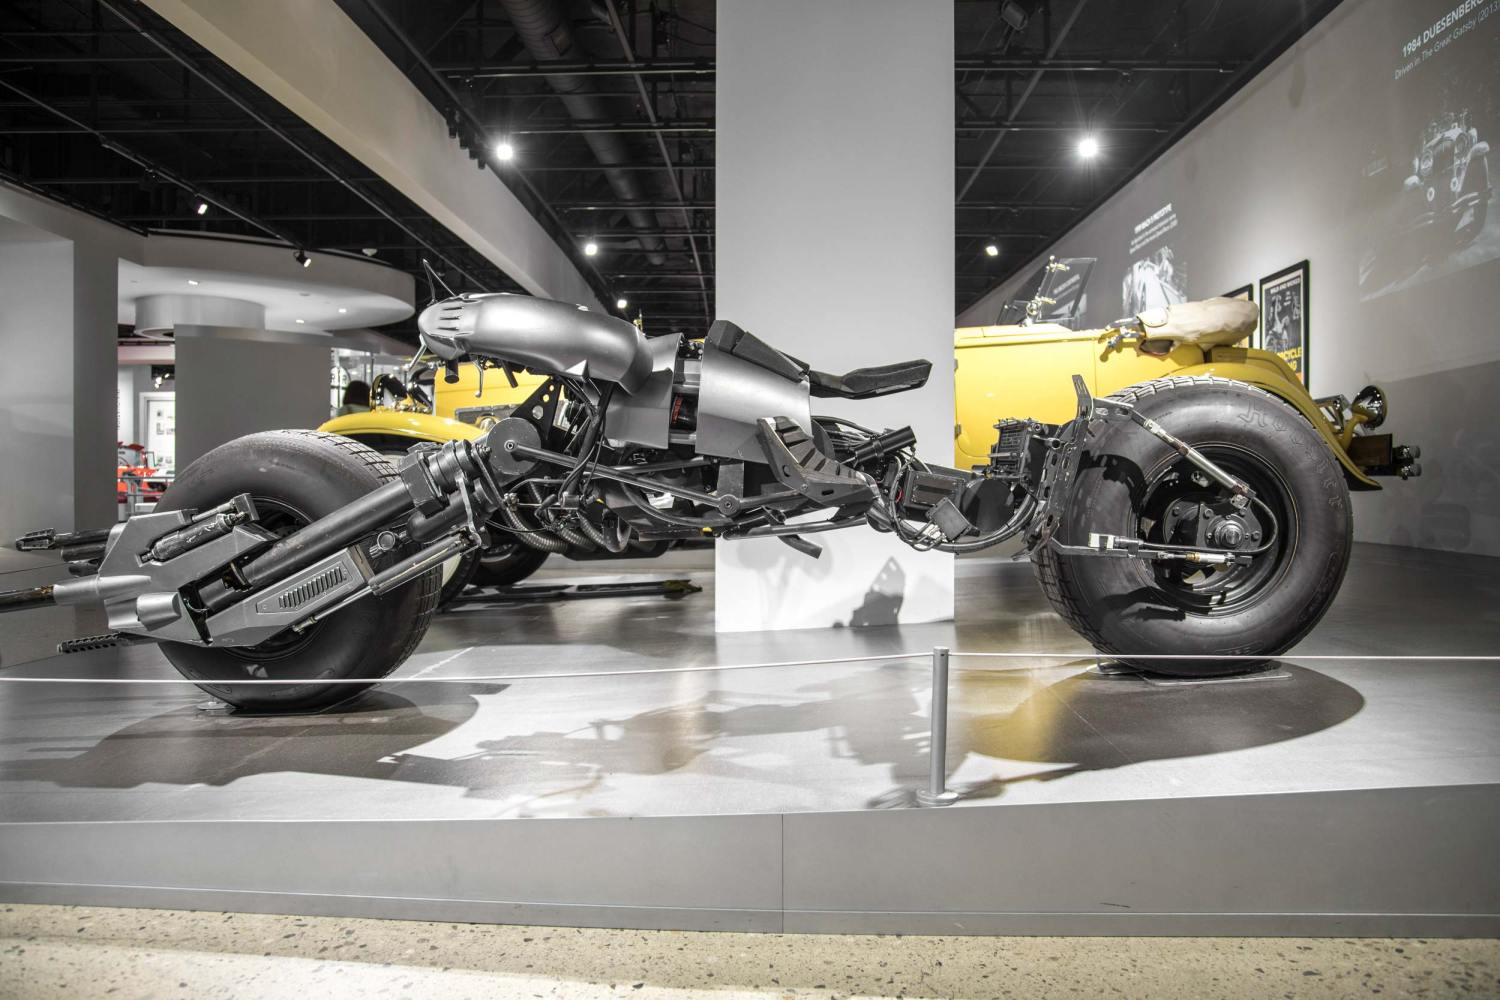 The Dark Knight and The Dark Knight Rises Batcycle